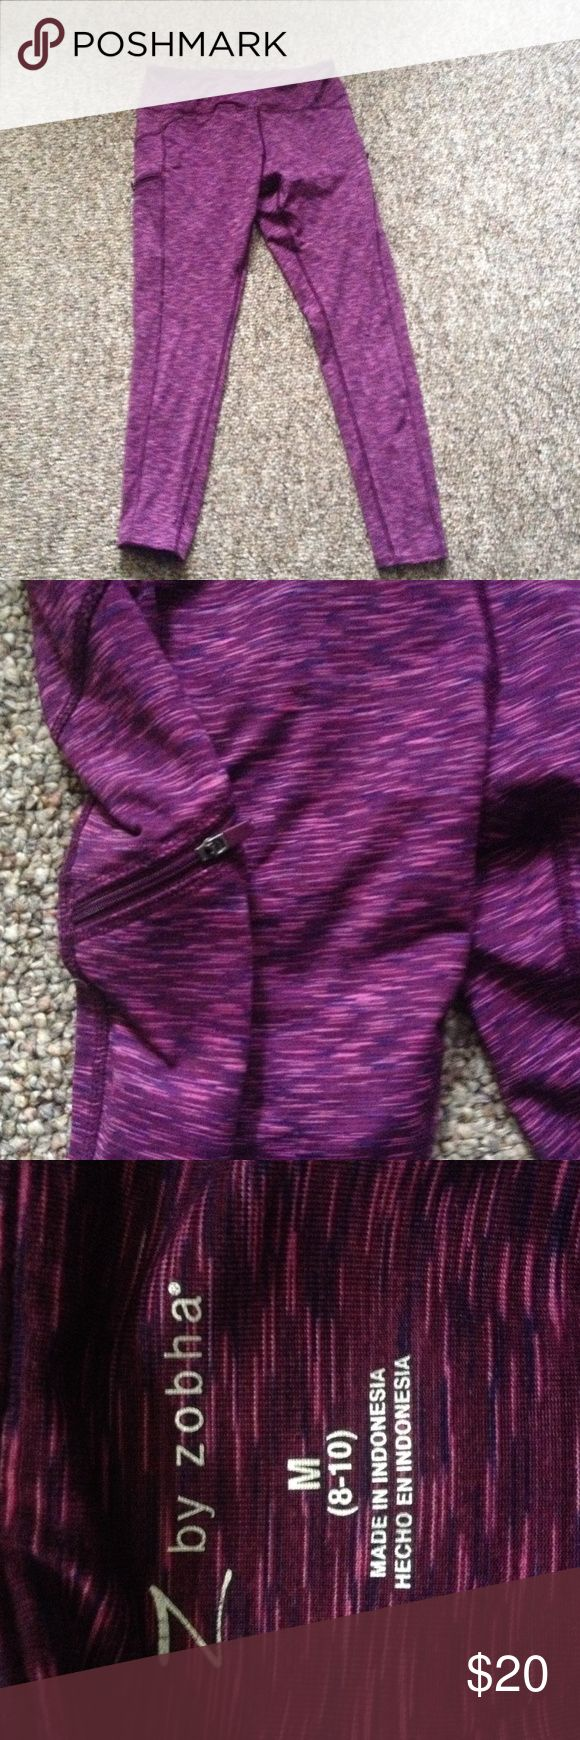 🆕listing! Gorgeous yoga skinny pants Pretty plum and purple shades! Size 8-10 form fitting and adorable like new! Zippered pockets and stretchy perfect for a good workout Zobha Pants Track Pants & Joggers